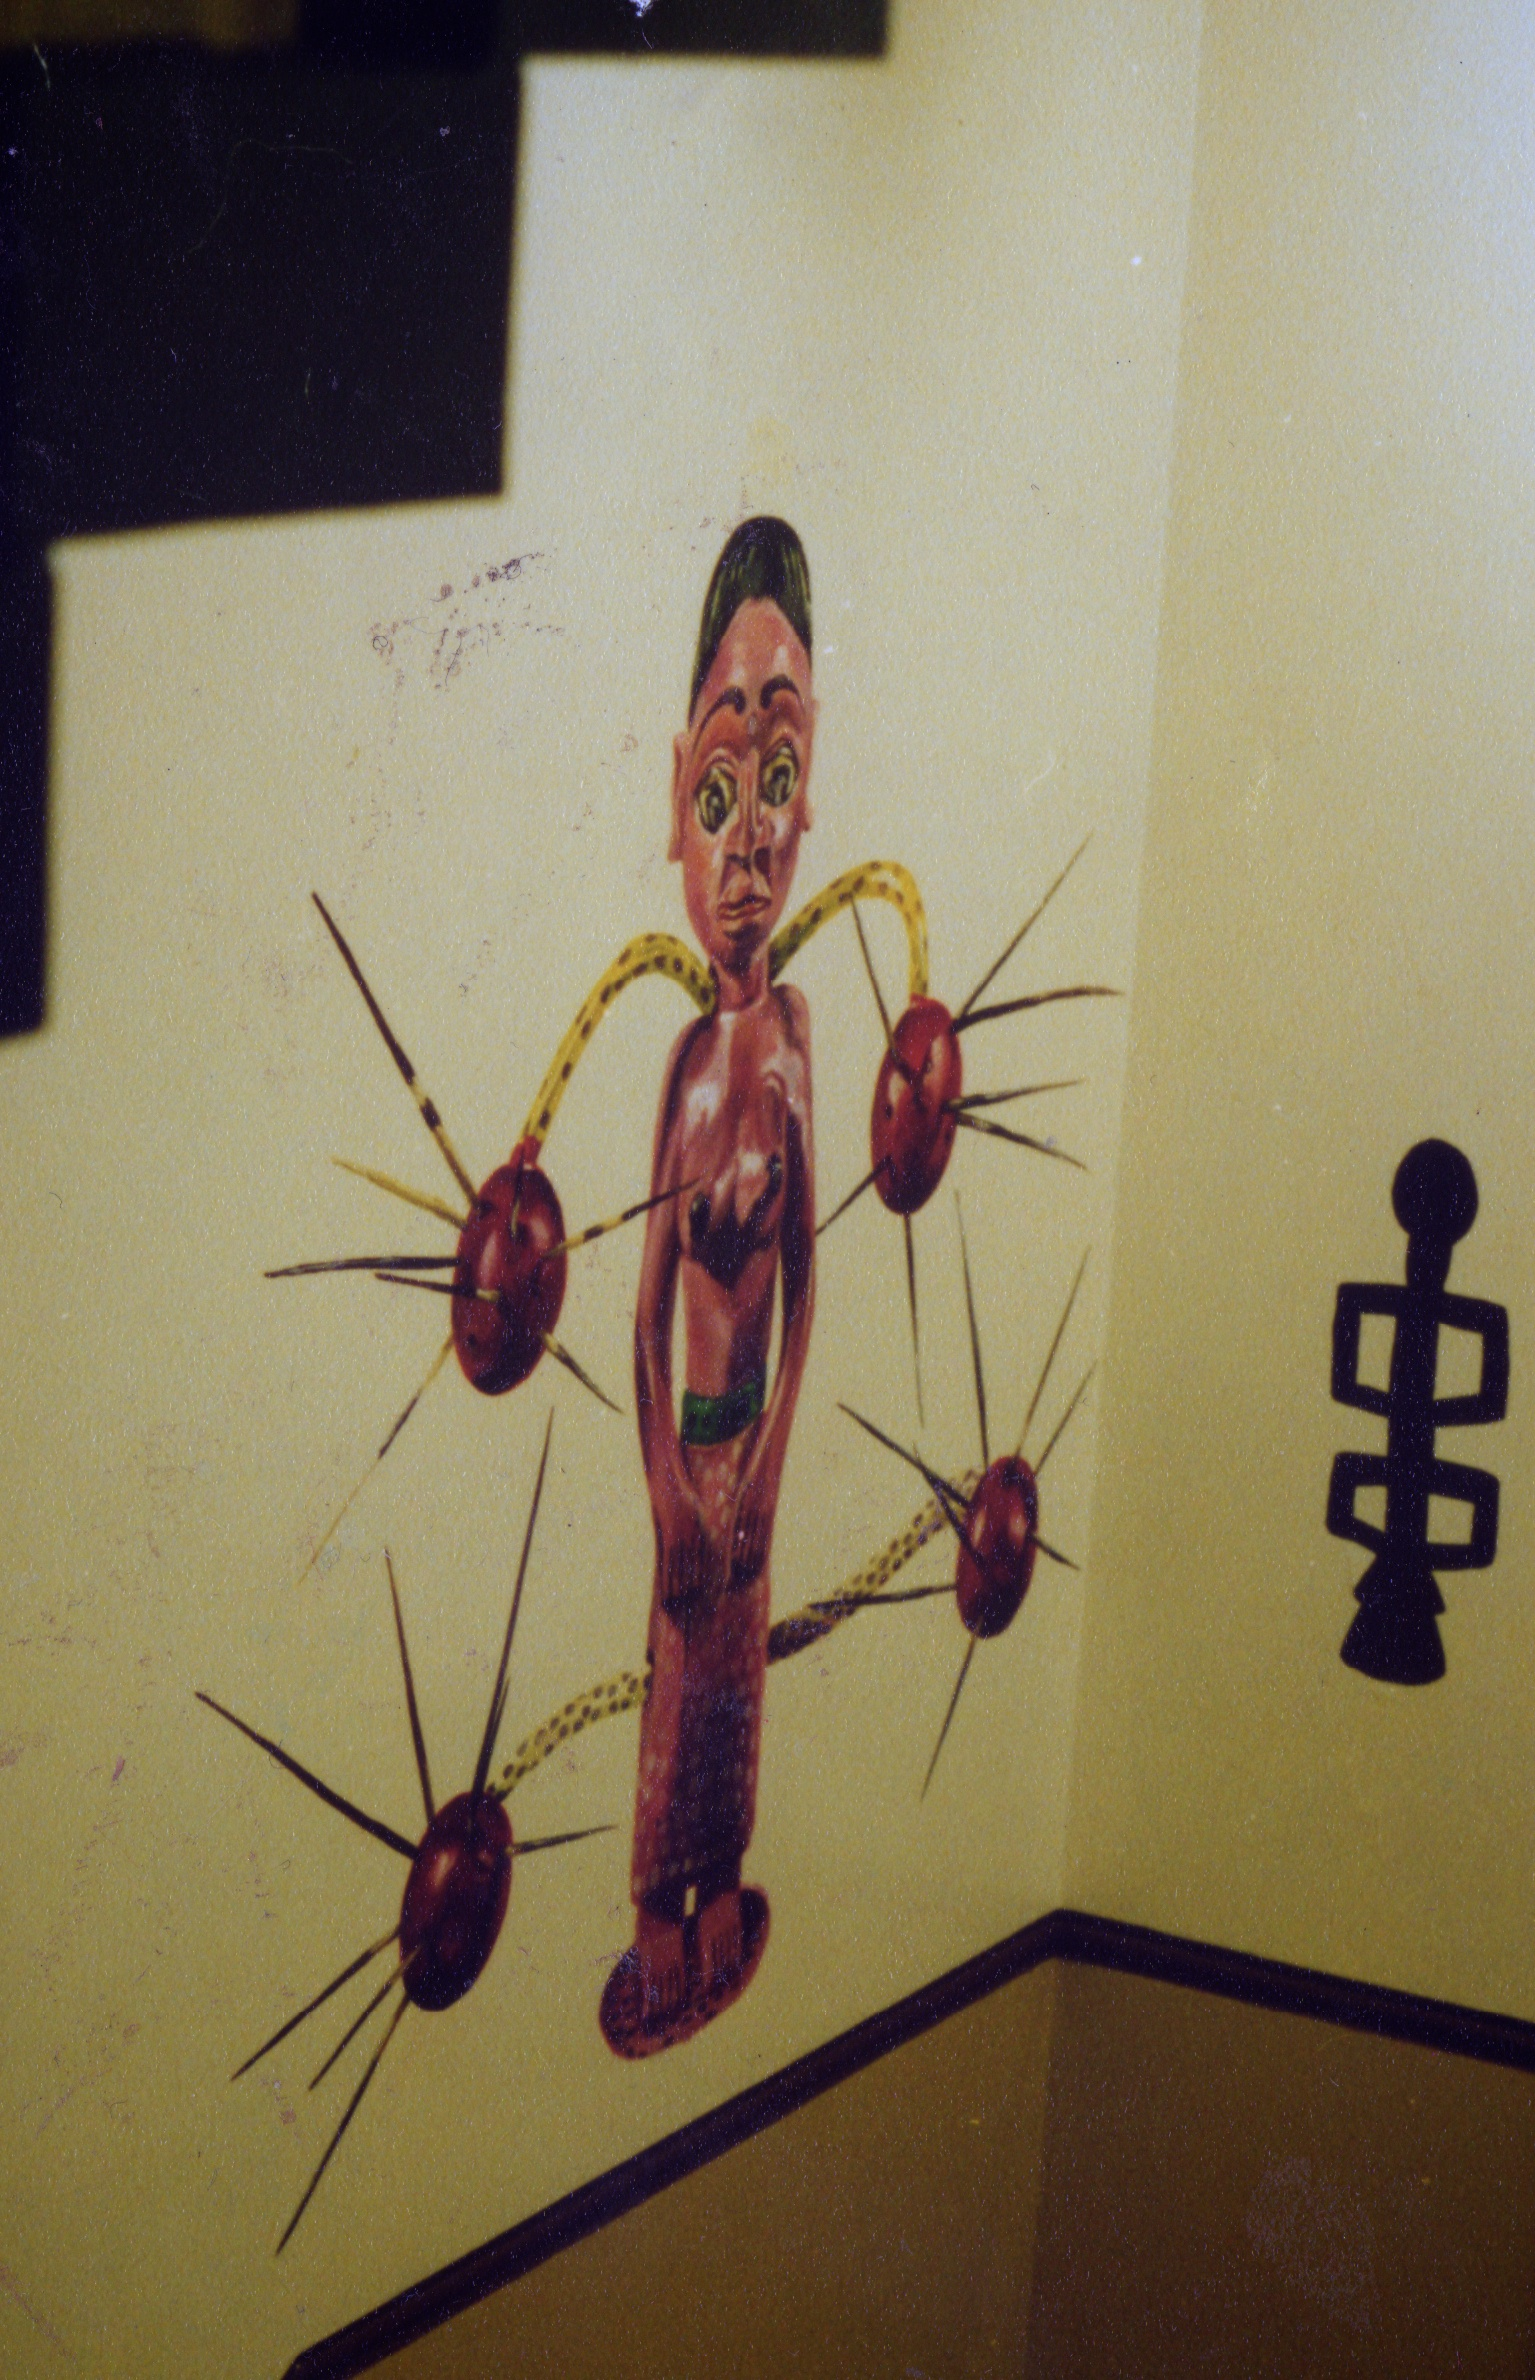 murals of a West African sculpture